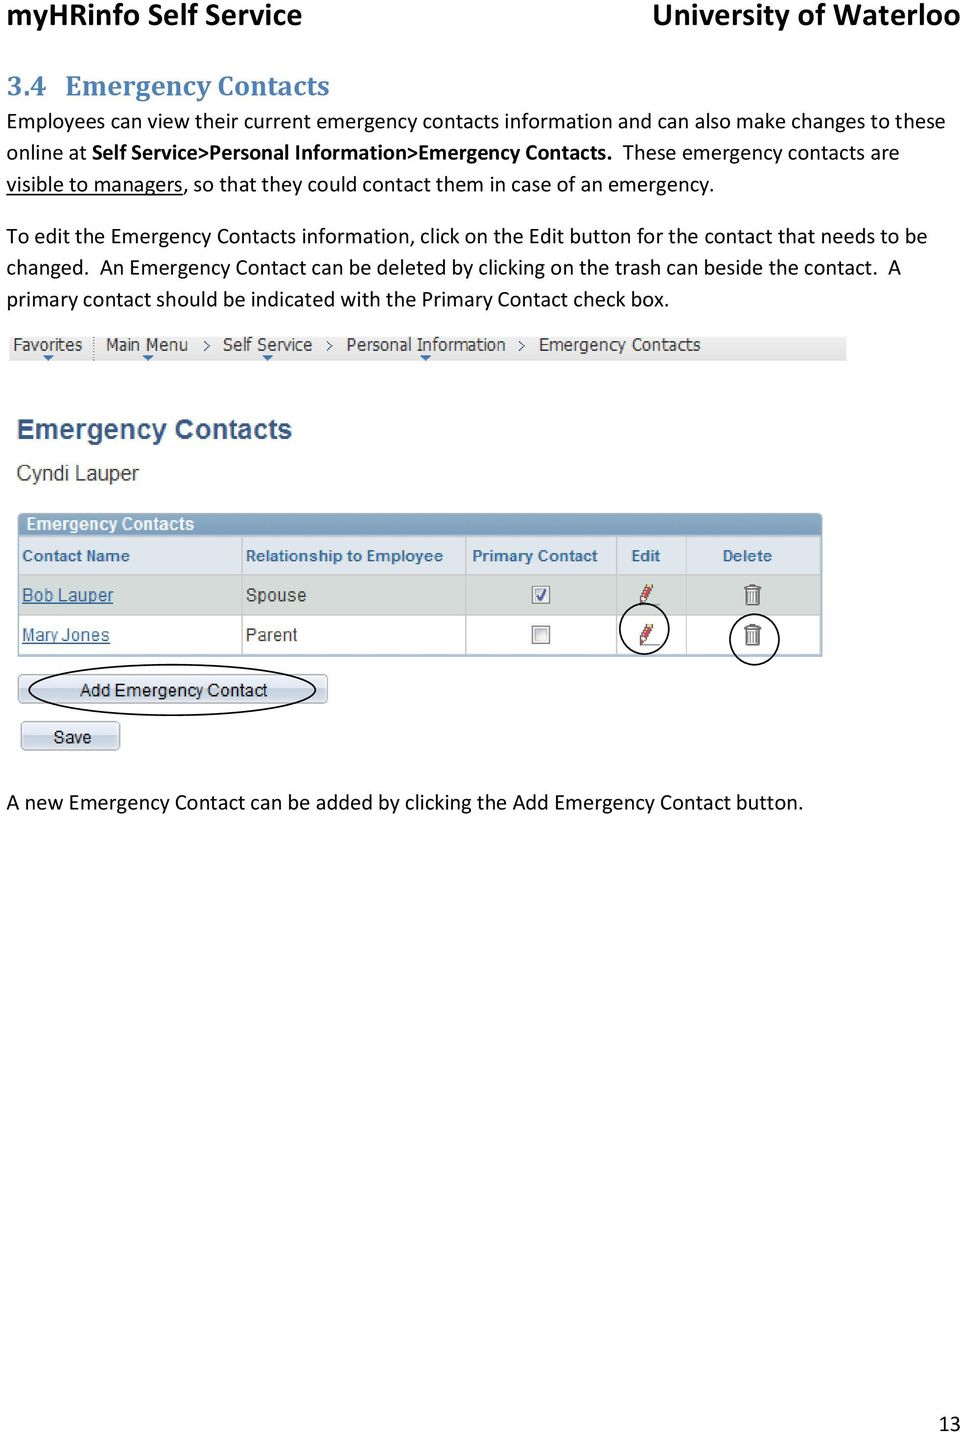 To edit the Emergency Contacts information, click on the Edit button for the contact that needs to be changed.